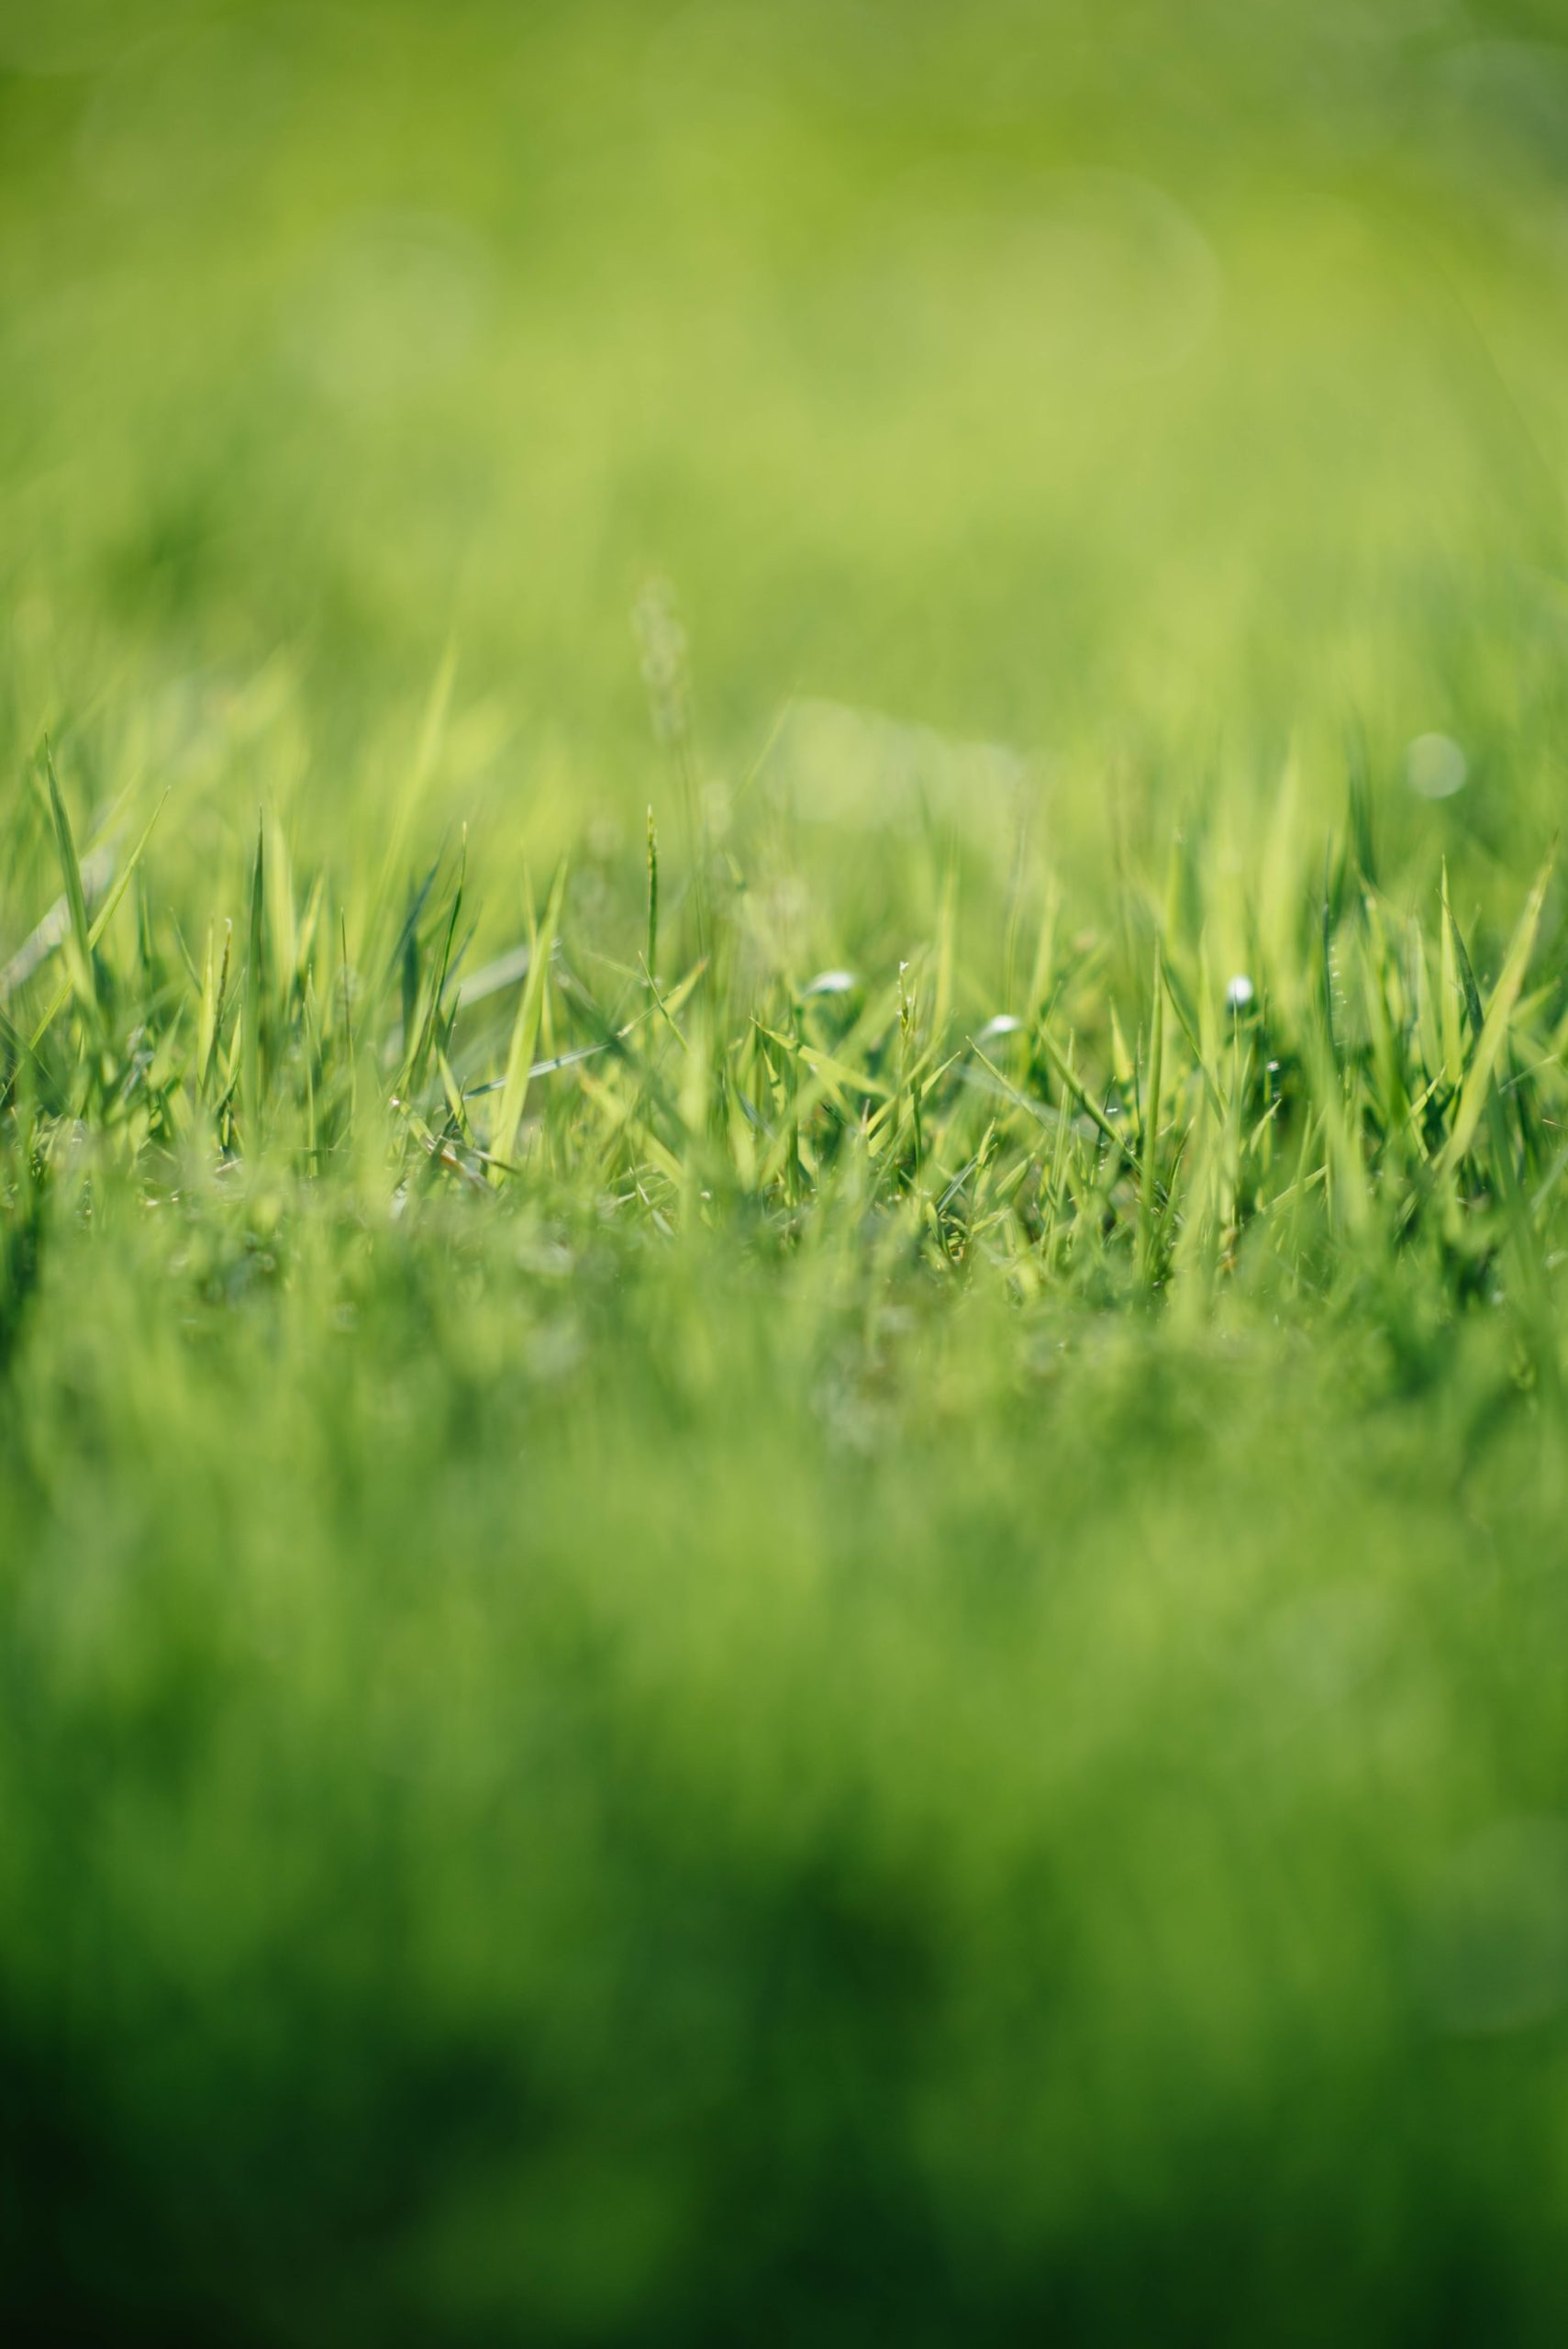 Lawn Care Business Article Image